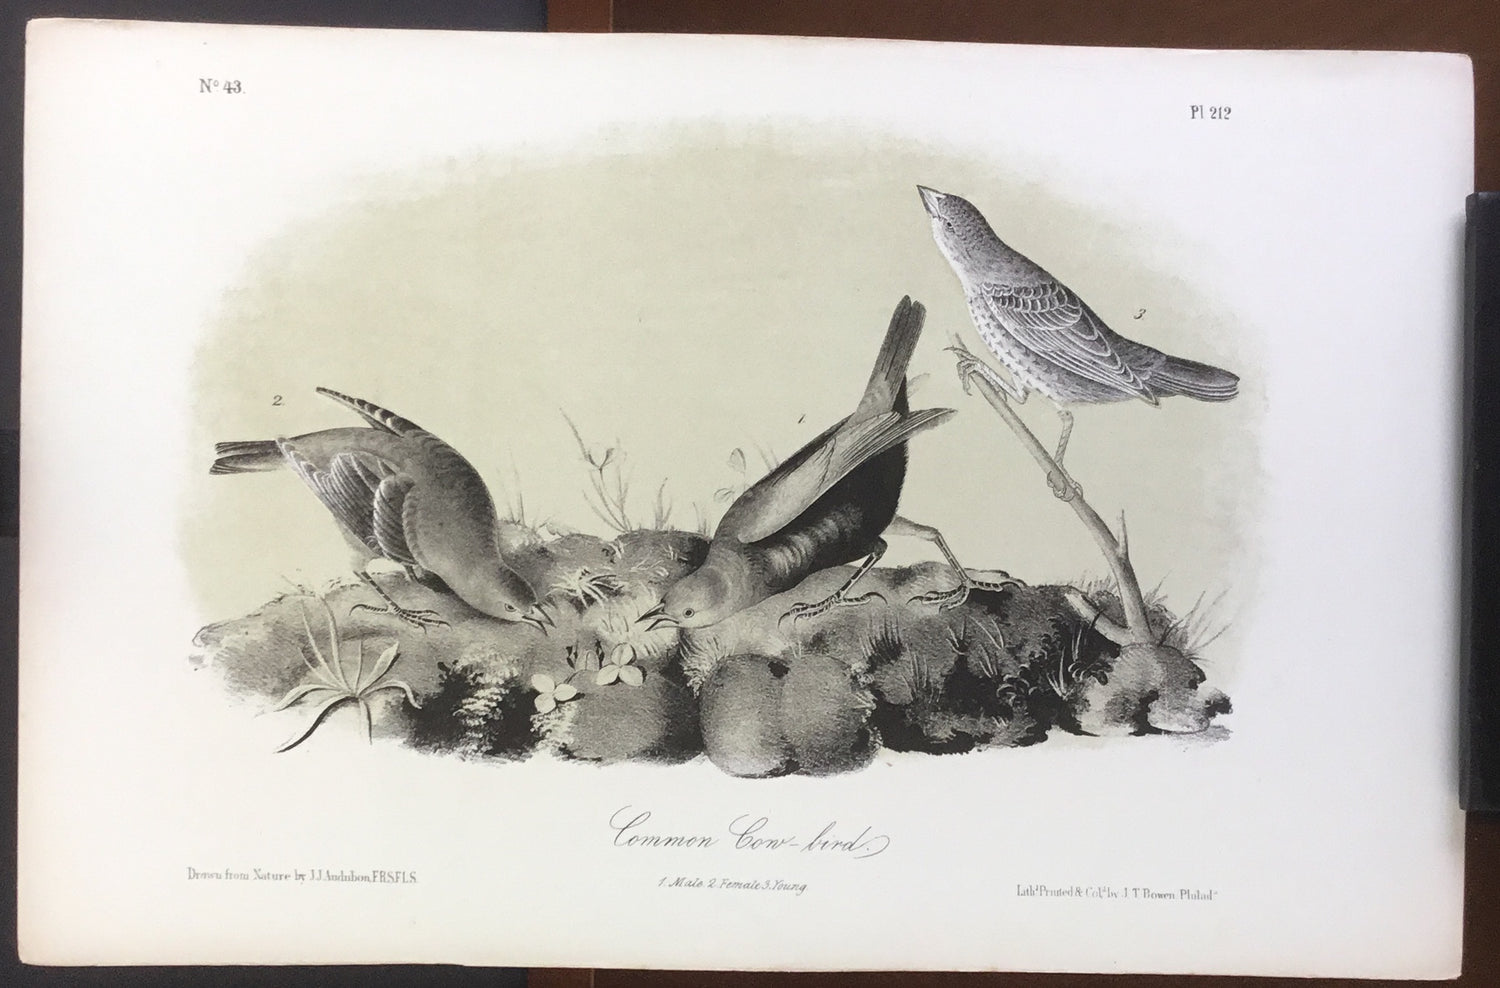 Audubon Octavo Common Cow-bird, plate 212, uncolored test sheet, 7 x 11